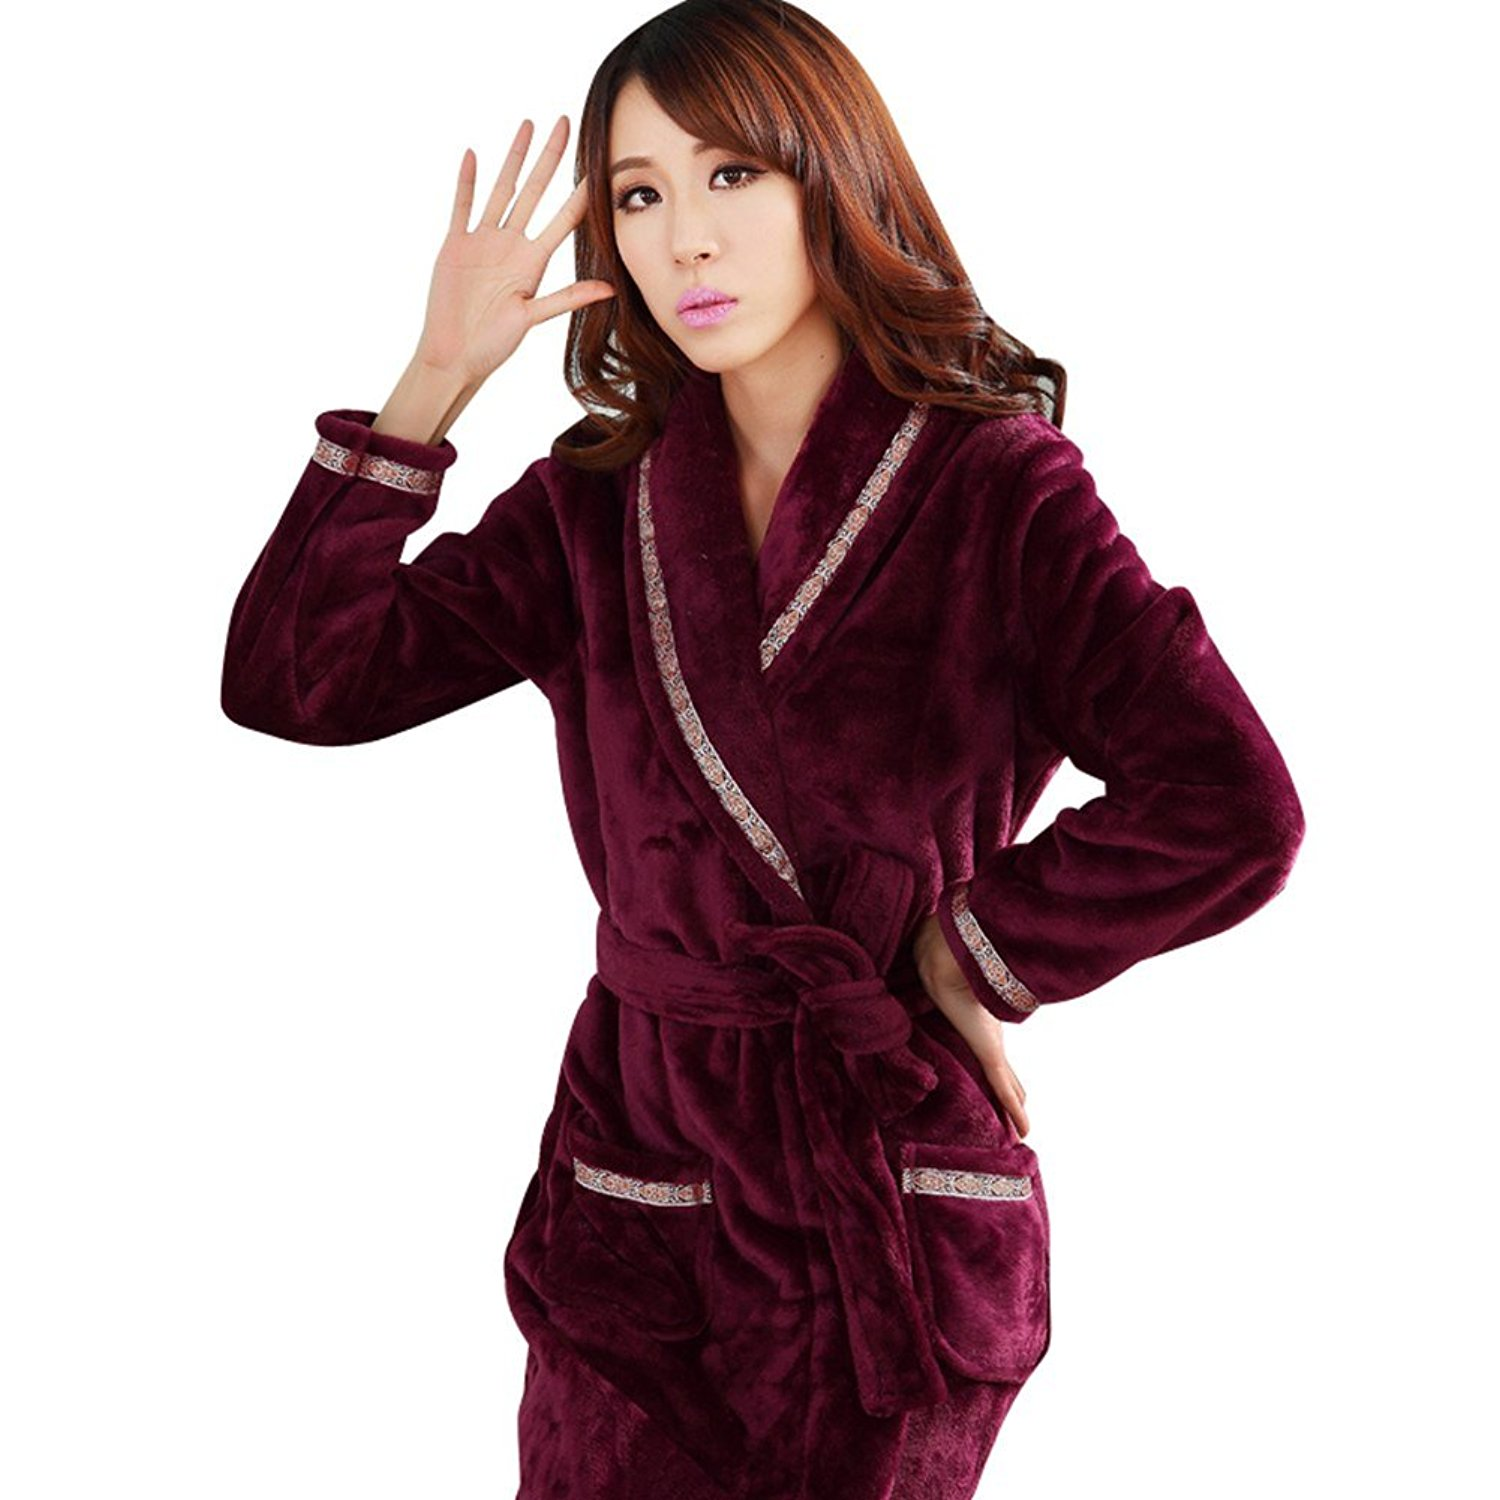 bd84f7c870 Get Quotations · Fashionpjs Flannel Fashion Matching Couples Women Men  Pajamas Thermal Long Robe